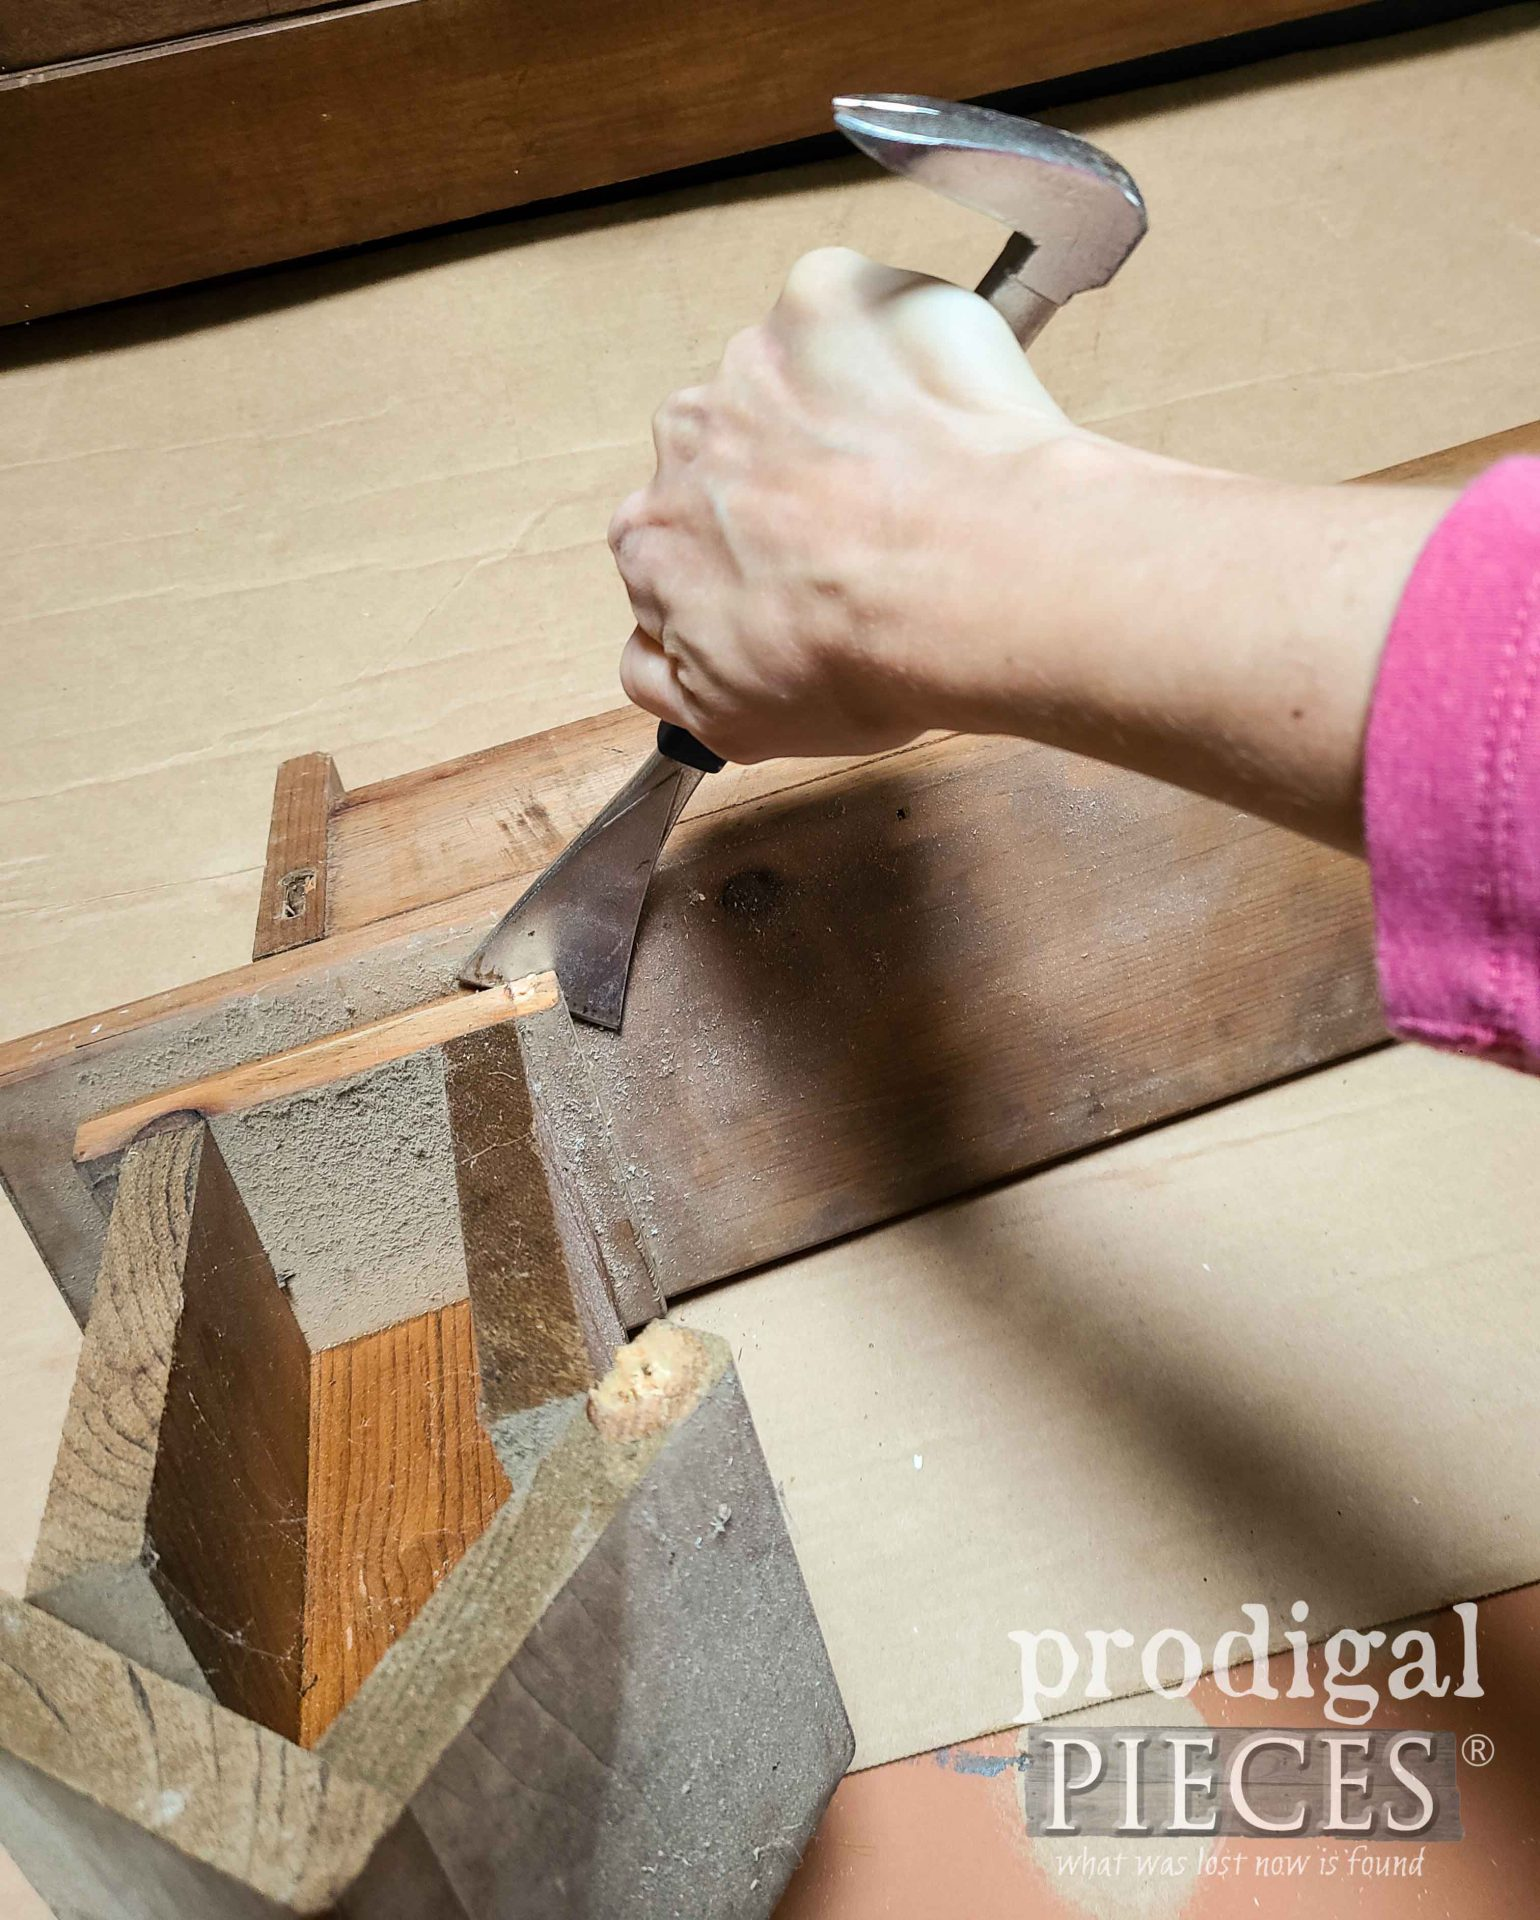 Dismantling Vintage Shelf for Upcycled Decor by Larissa of Prodigal Pieces | prodigalpieces.com #prodigalpieces